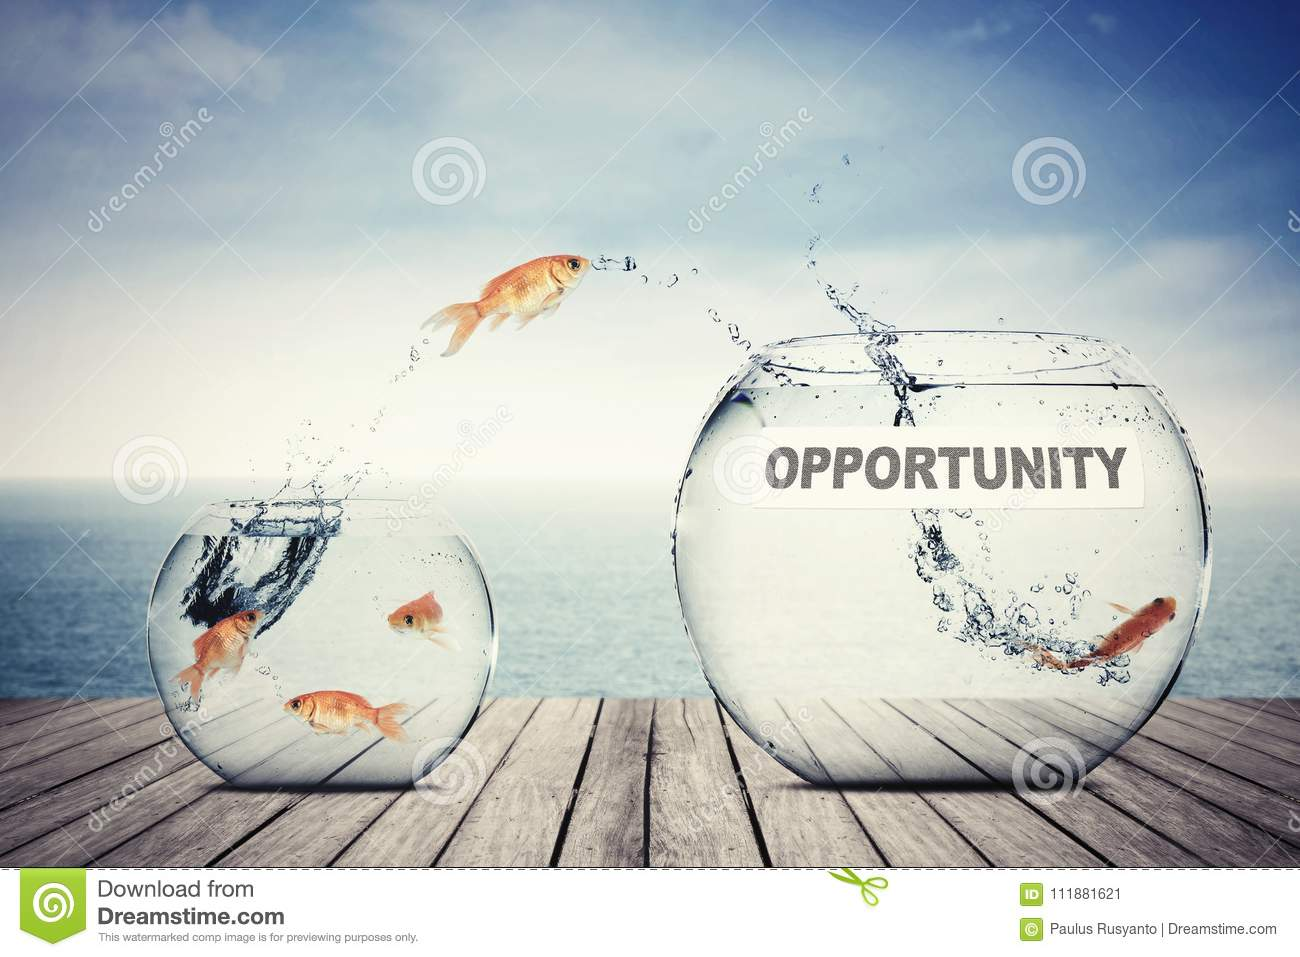 Goldfish jumping out to aquarium with opportunity text